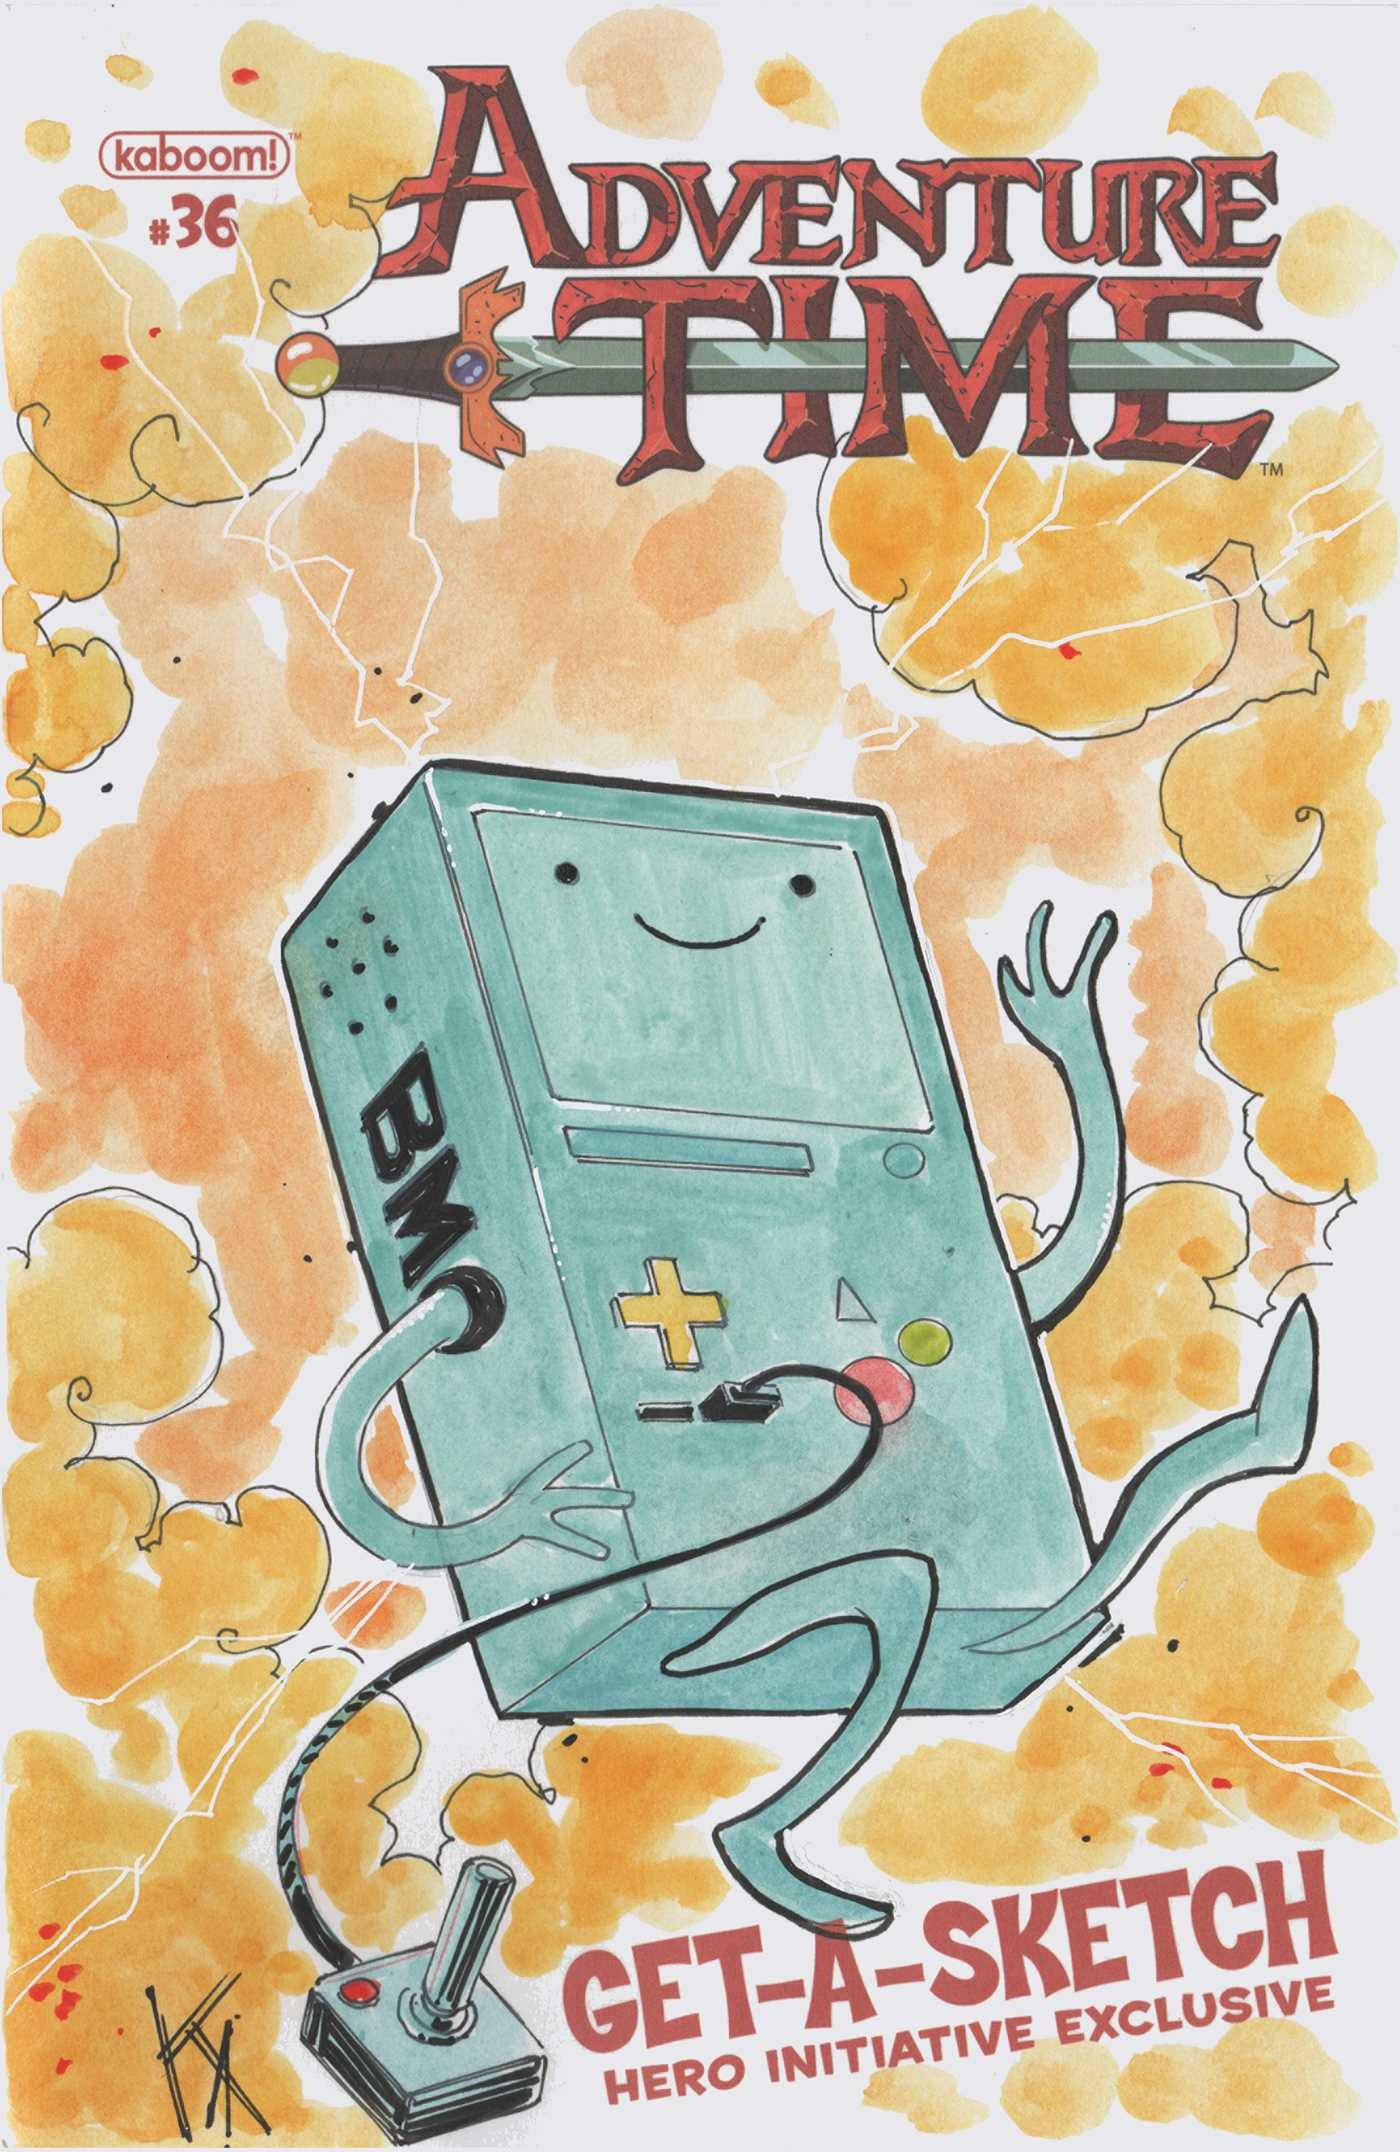 Adventure time 100 project 9781684152261.in02